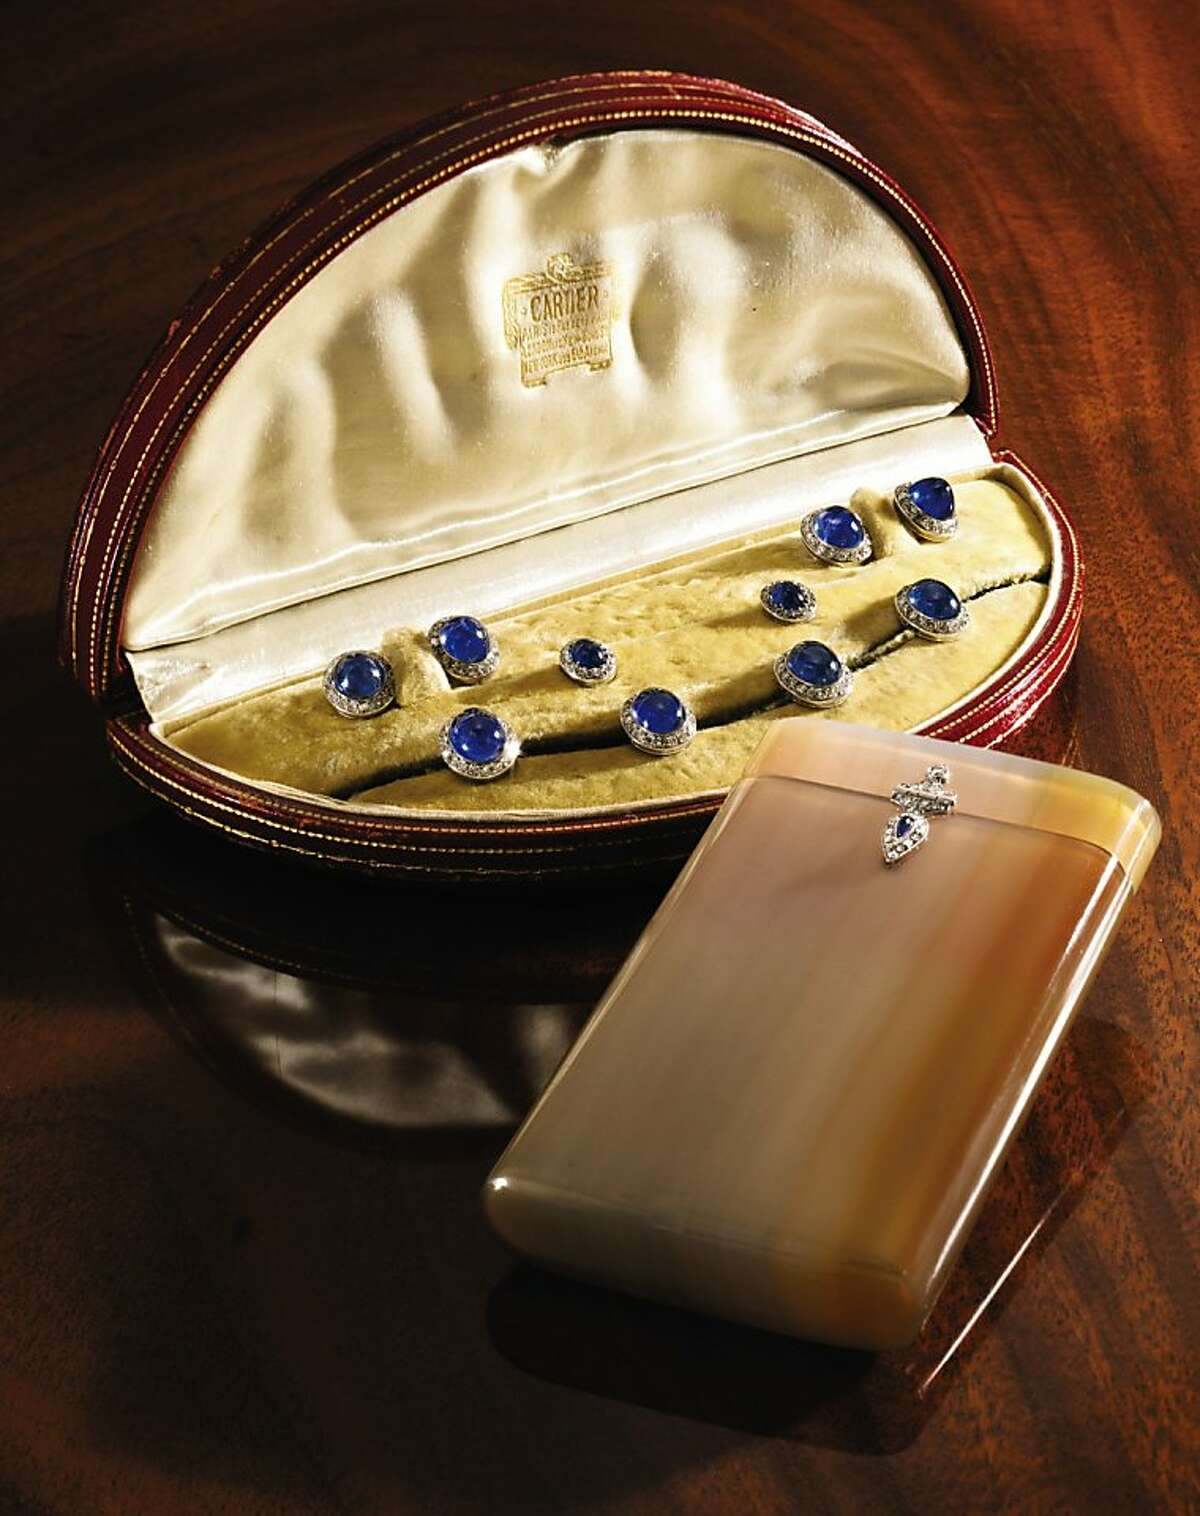 Pieces from the holdings of the late objet d'art collector John Traina of San Francisco will be auctioned at Sotheby's in New York on Dec. 7. They include this platinum, agate, sapphire and diamond cigarette case by Cartier of New York, circa 1920 (estimated value $5,000-7,000.) Platinum, Cabochon Sapphire and Diamond Dess Set, Cartier, Paris, Circa 1920, comprising a pair of cufflinks, four buttons and two studes, in a signed and fitted box. (Est. $10,000-15,000)